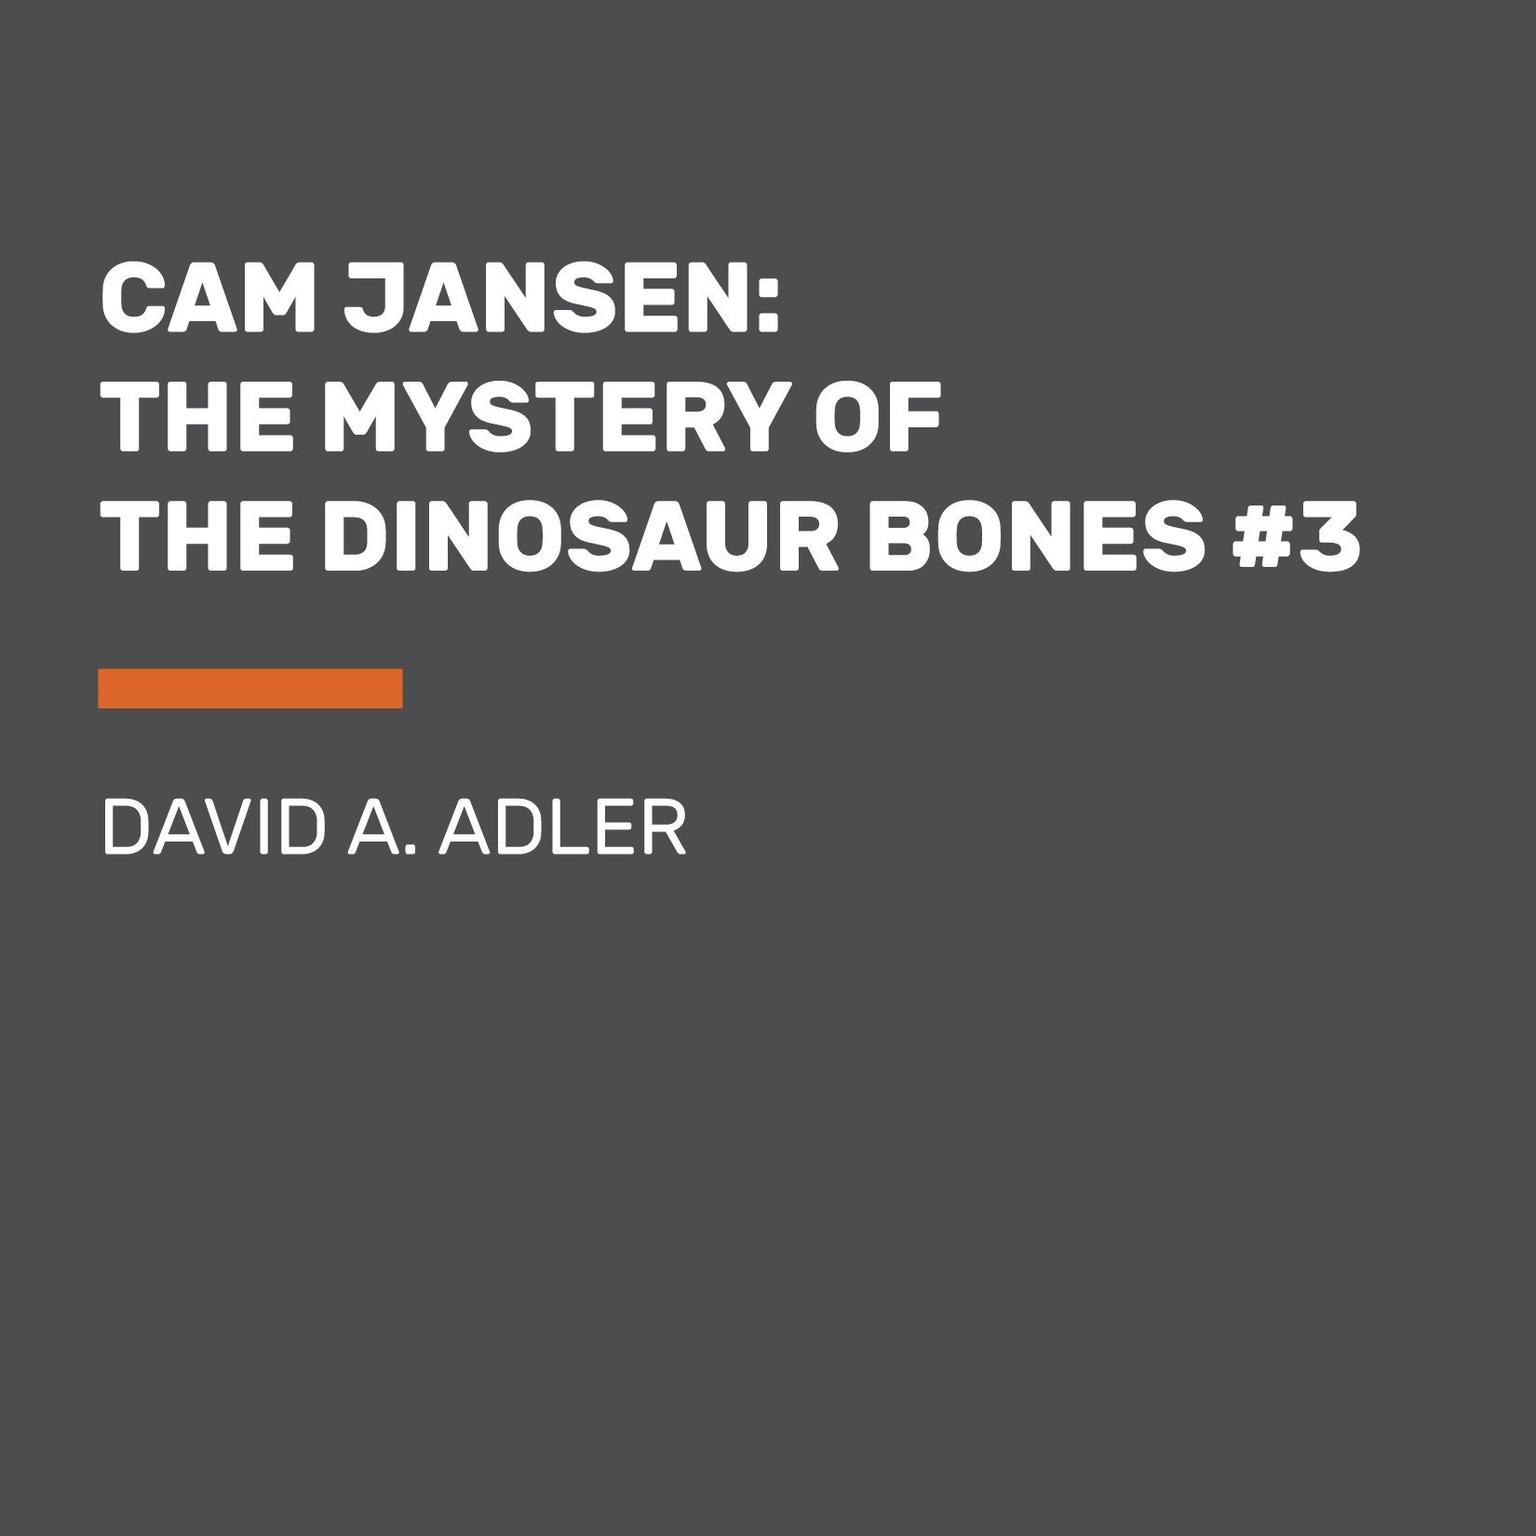 Printable Cam Jansen: The Mystery of the Dinosaur Bones #3: The Mystery of the Dinosaur Bones Audiobook Cover Art